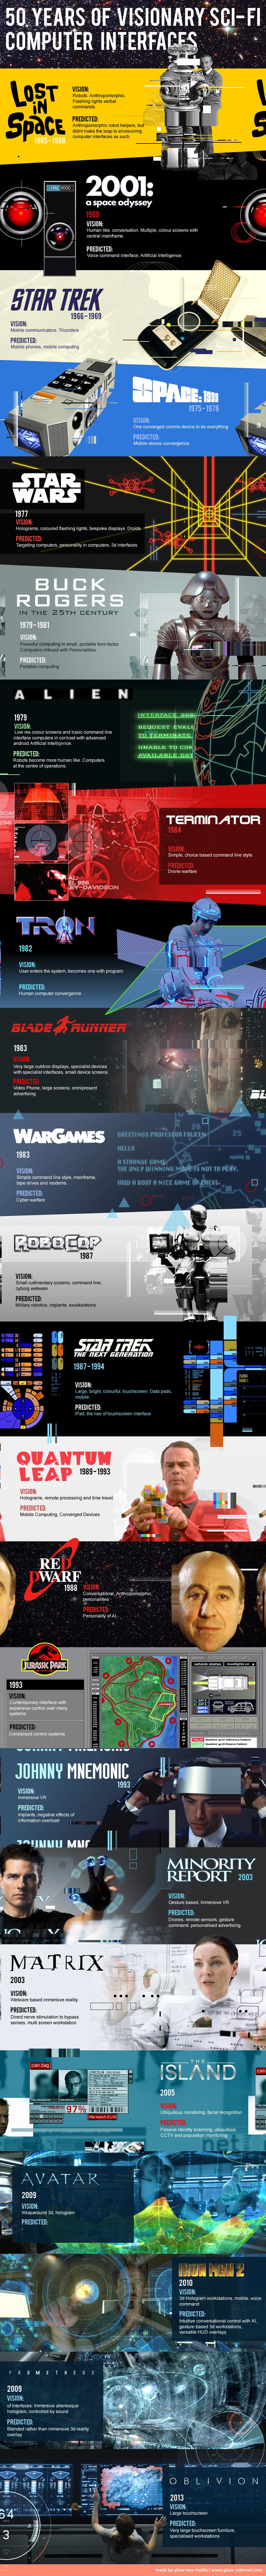 user-sci-fi-interfaces-infographic